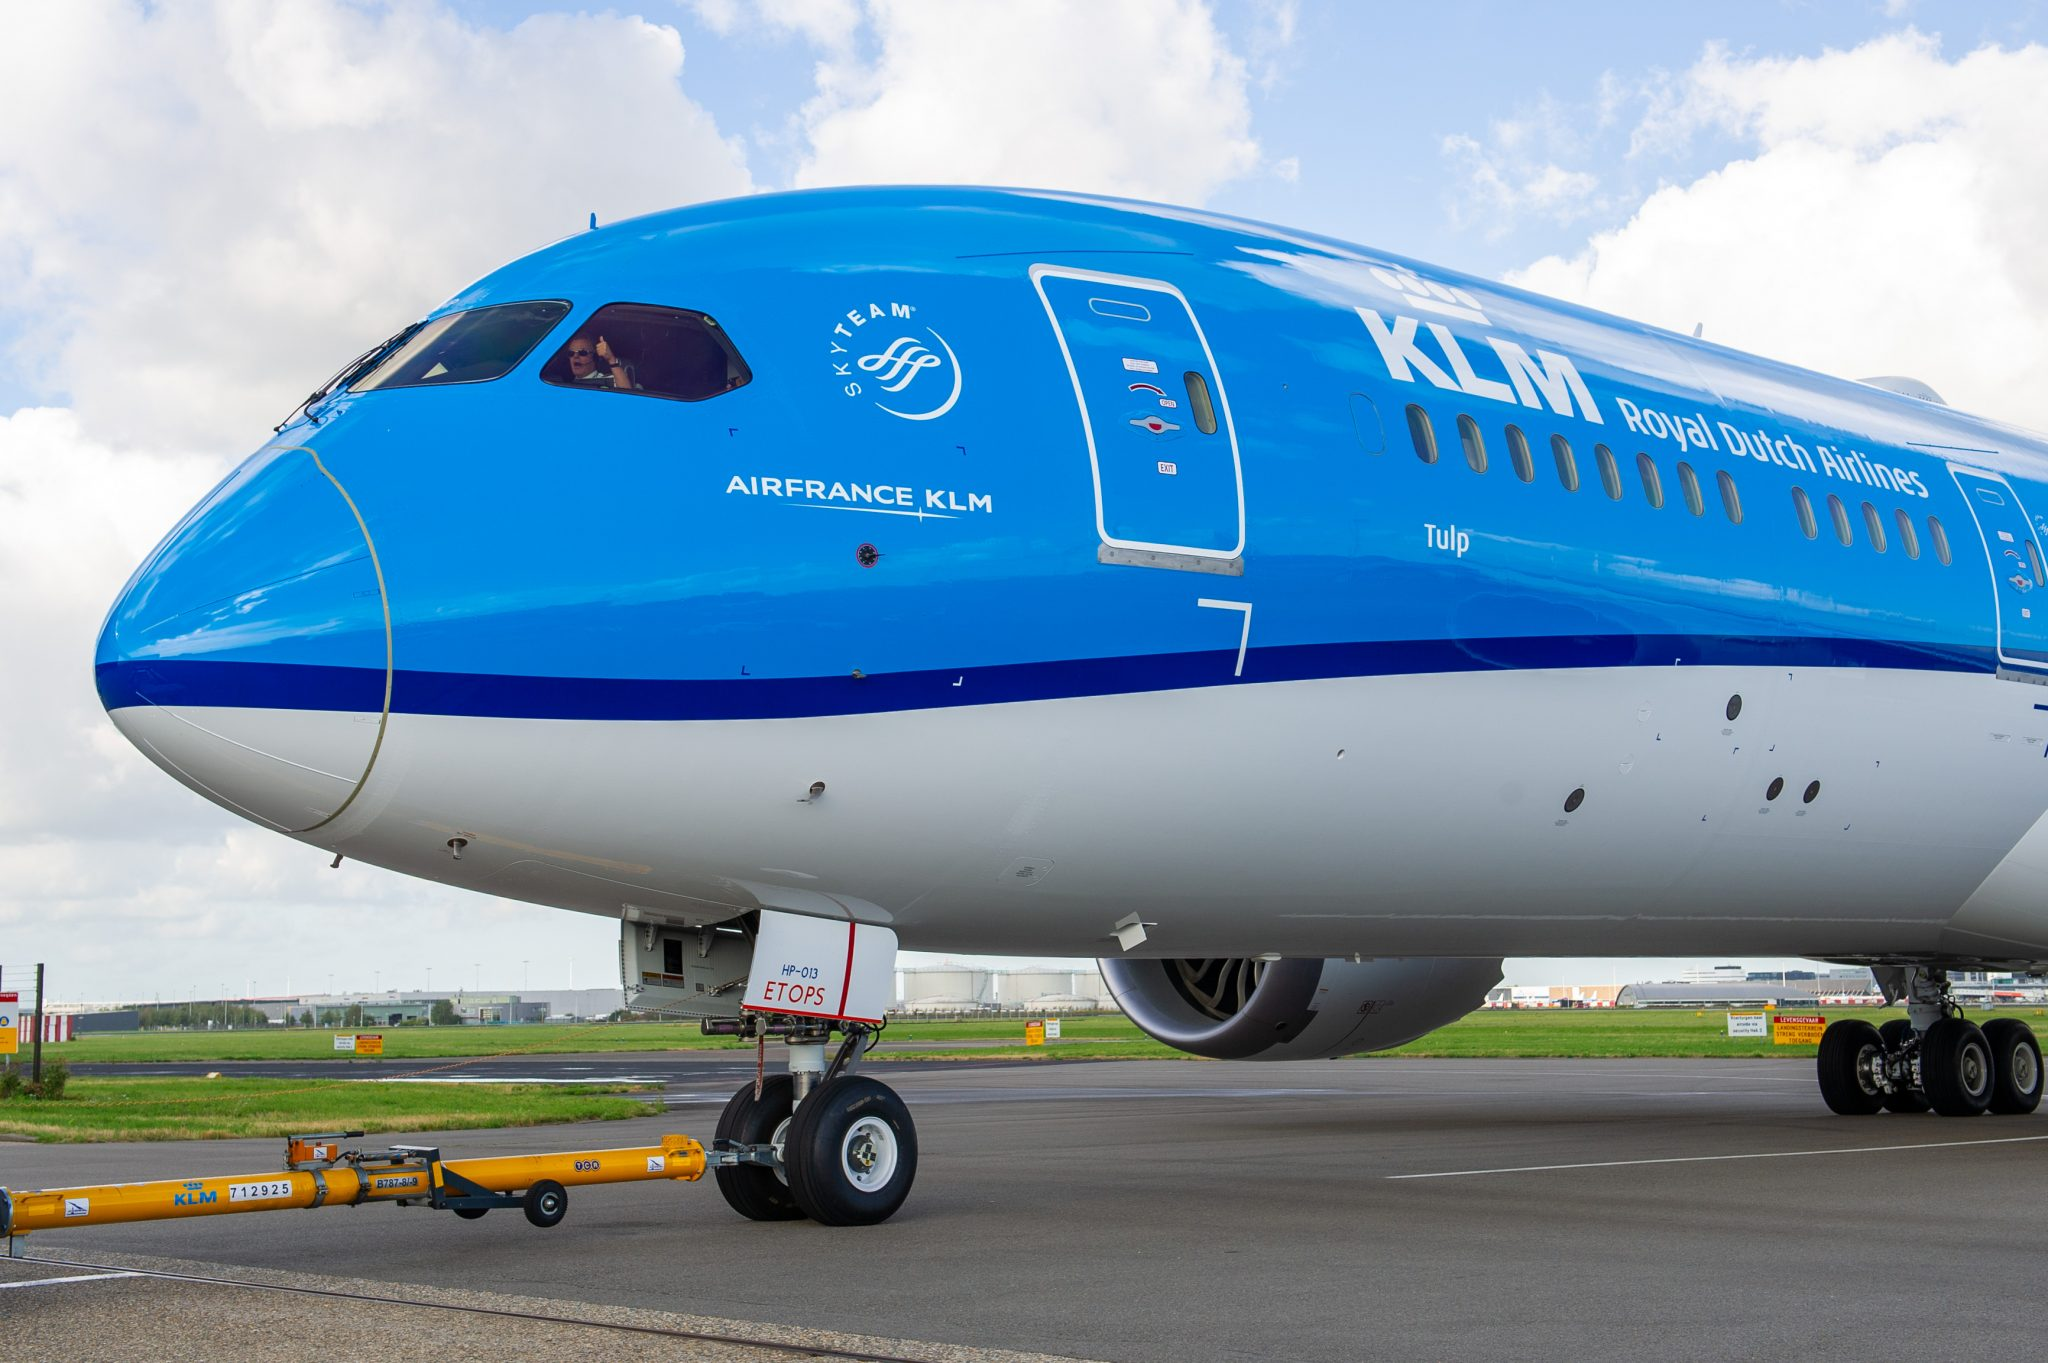 KLM Royal Dutch Airlines to Host 76th IATA AGM in Amsterdam